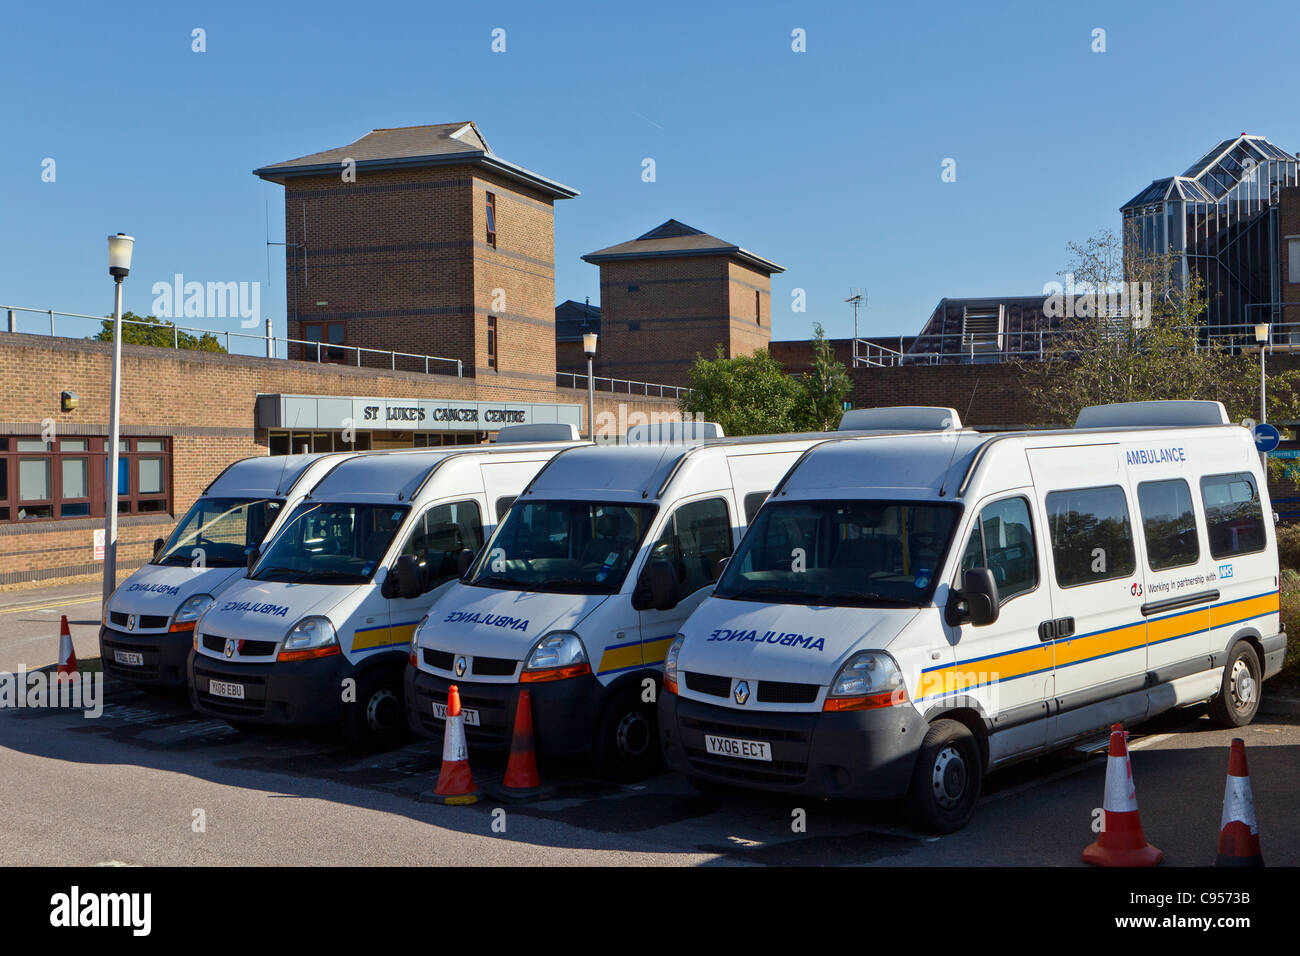 Four ambulances parked outside the St. Luke's Cancer Centre, Guildford - Stock Image